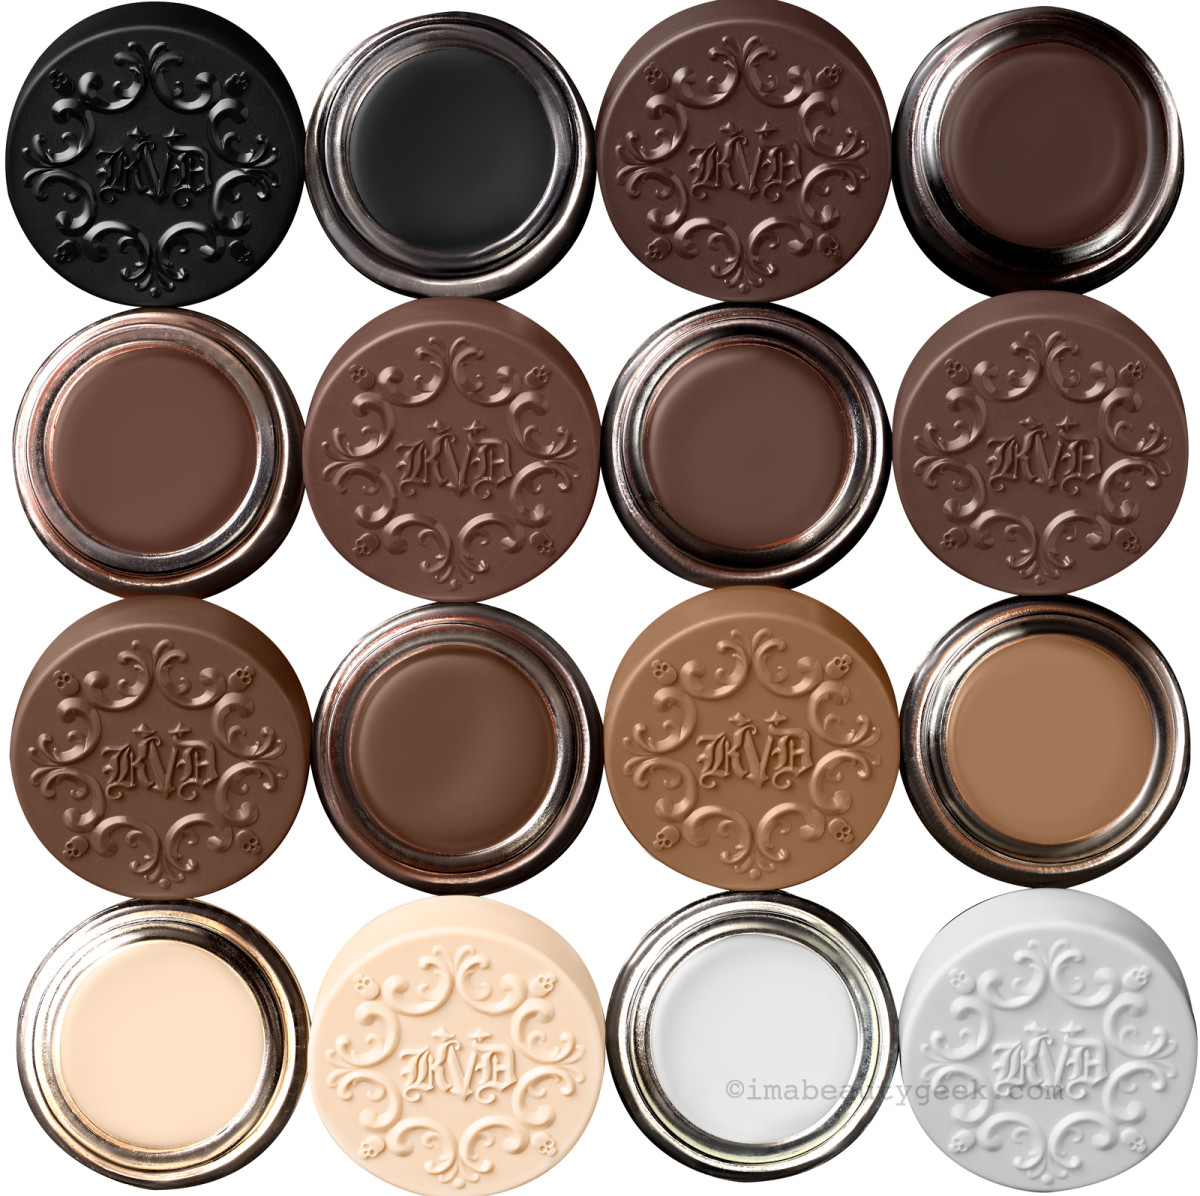 Kat Von D 24-Hr Super Brow Long-Wear Pomade neutral shades